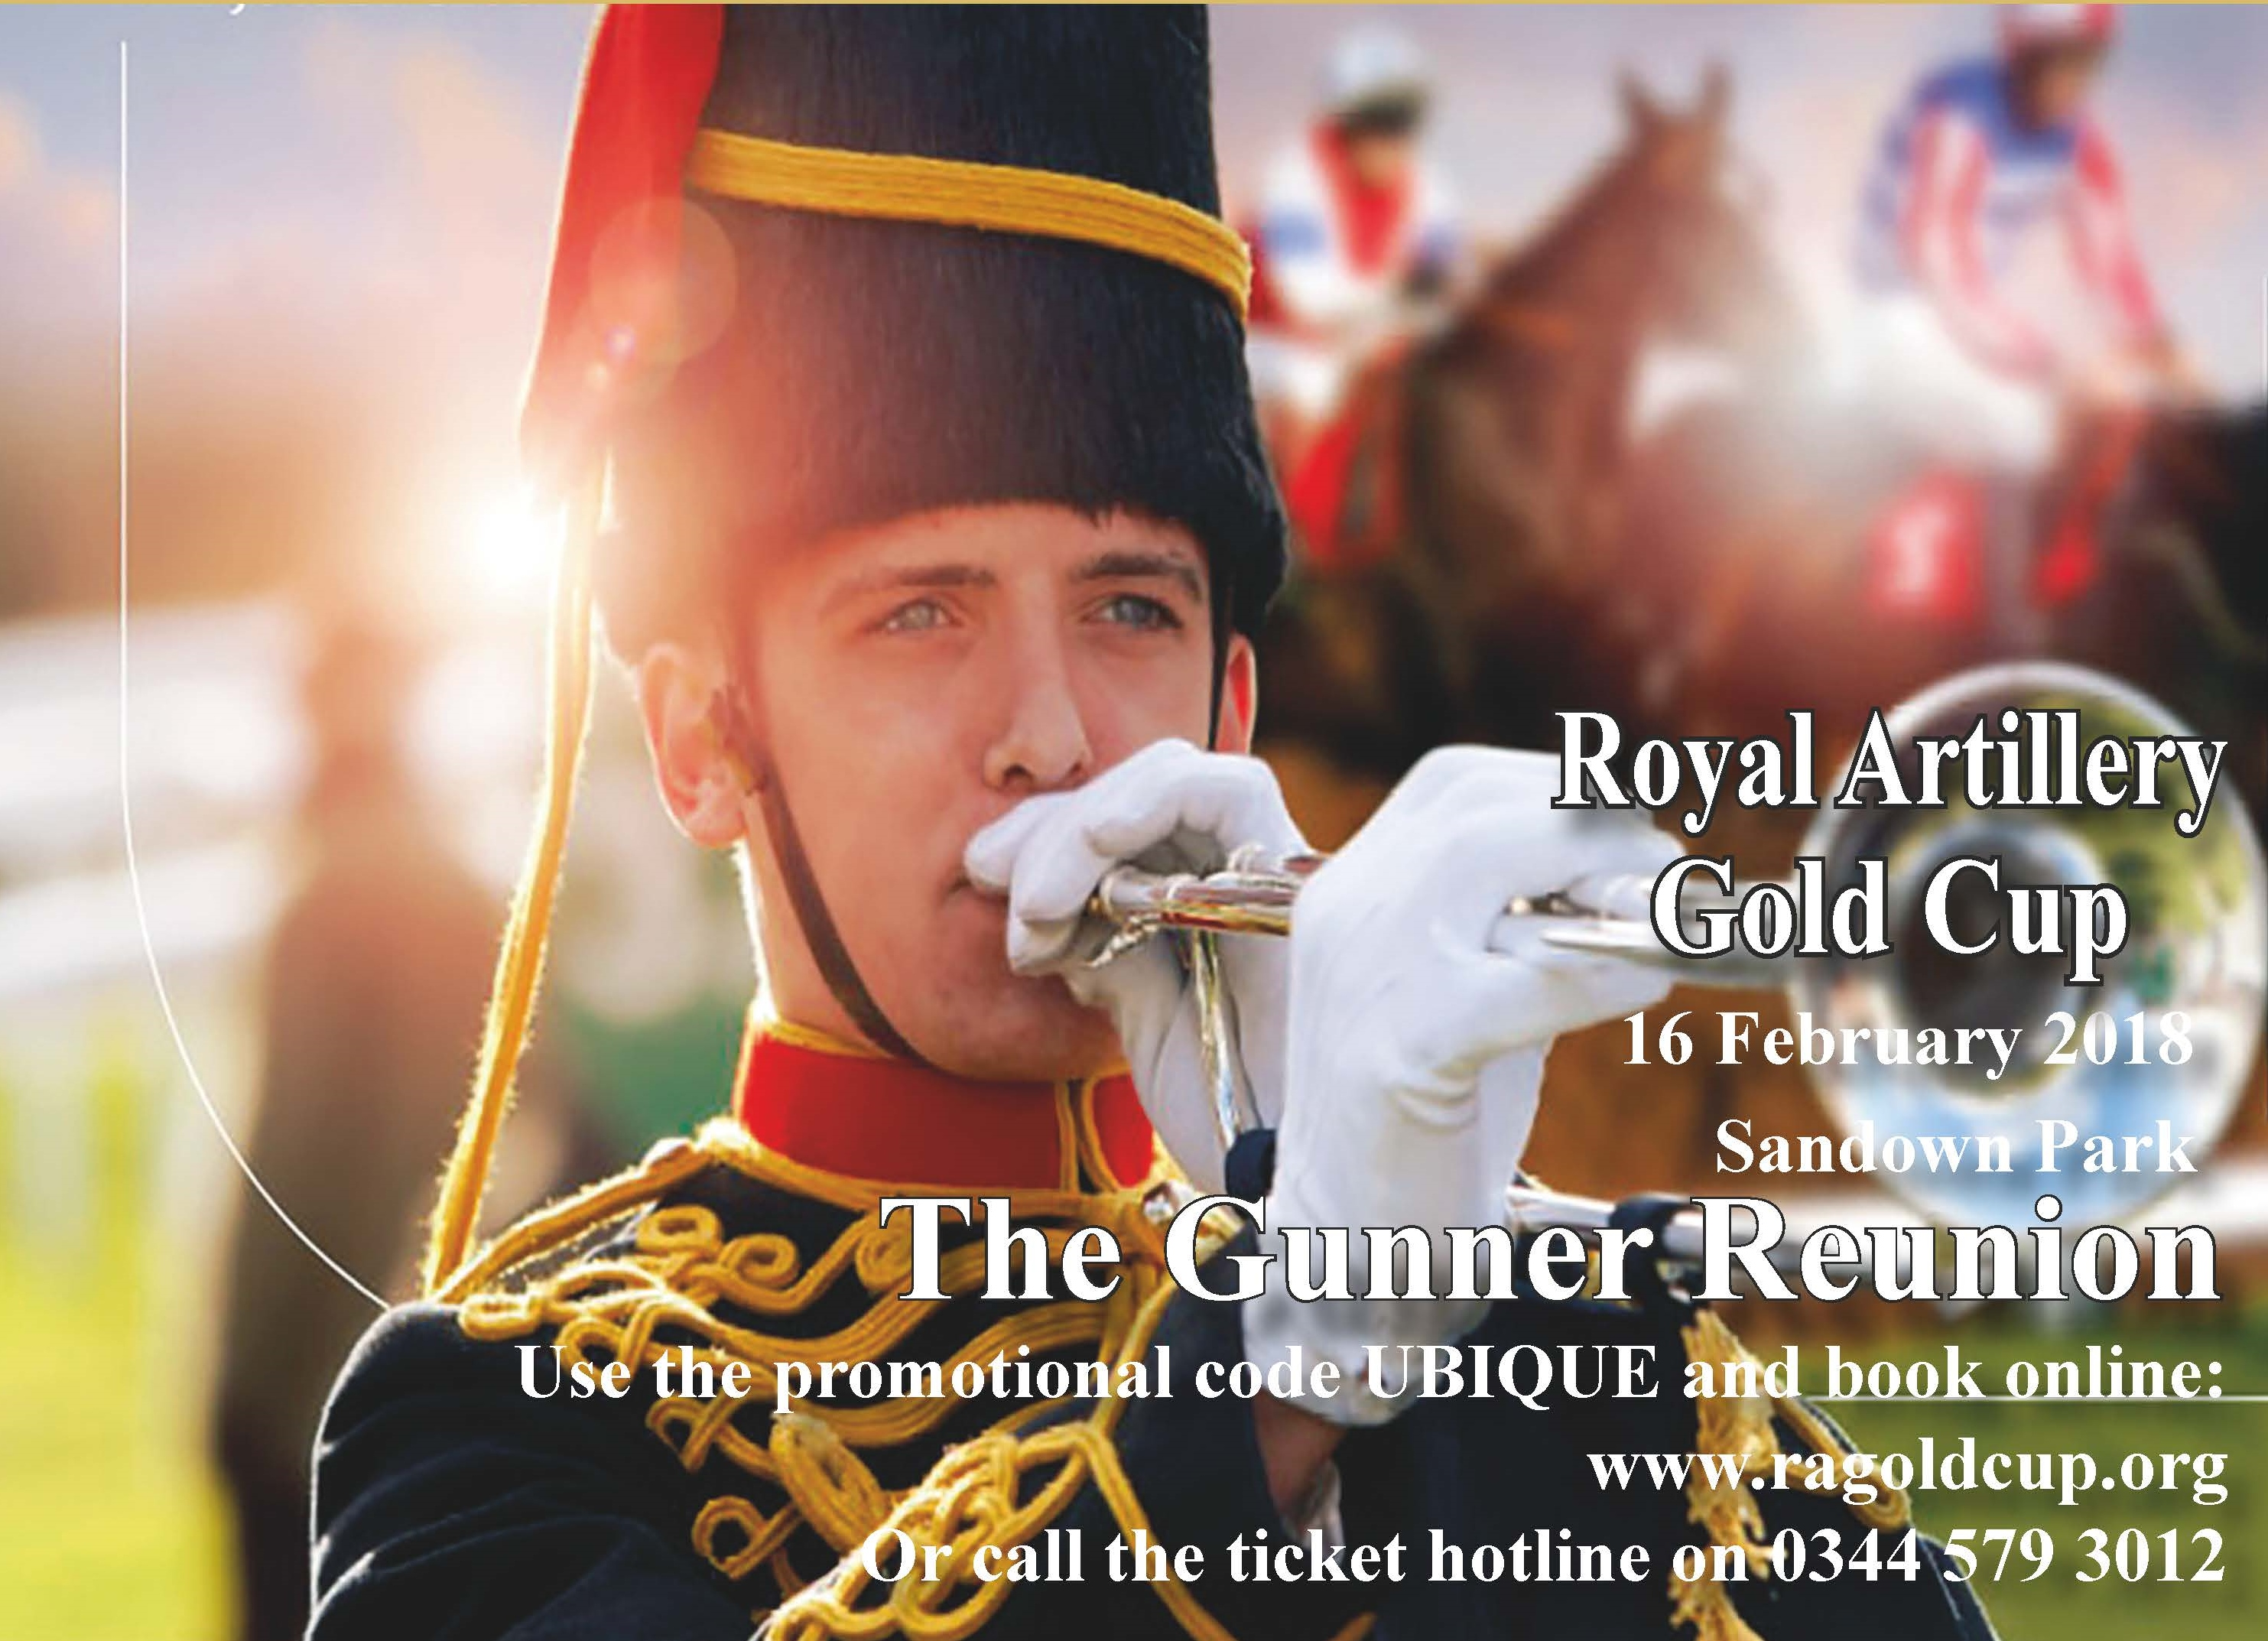 The Royal Artillery Gold Cup